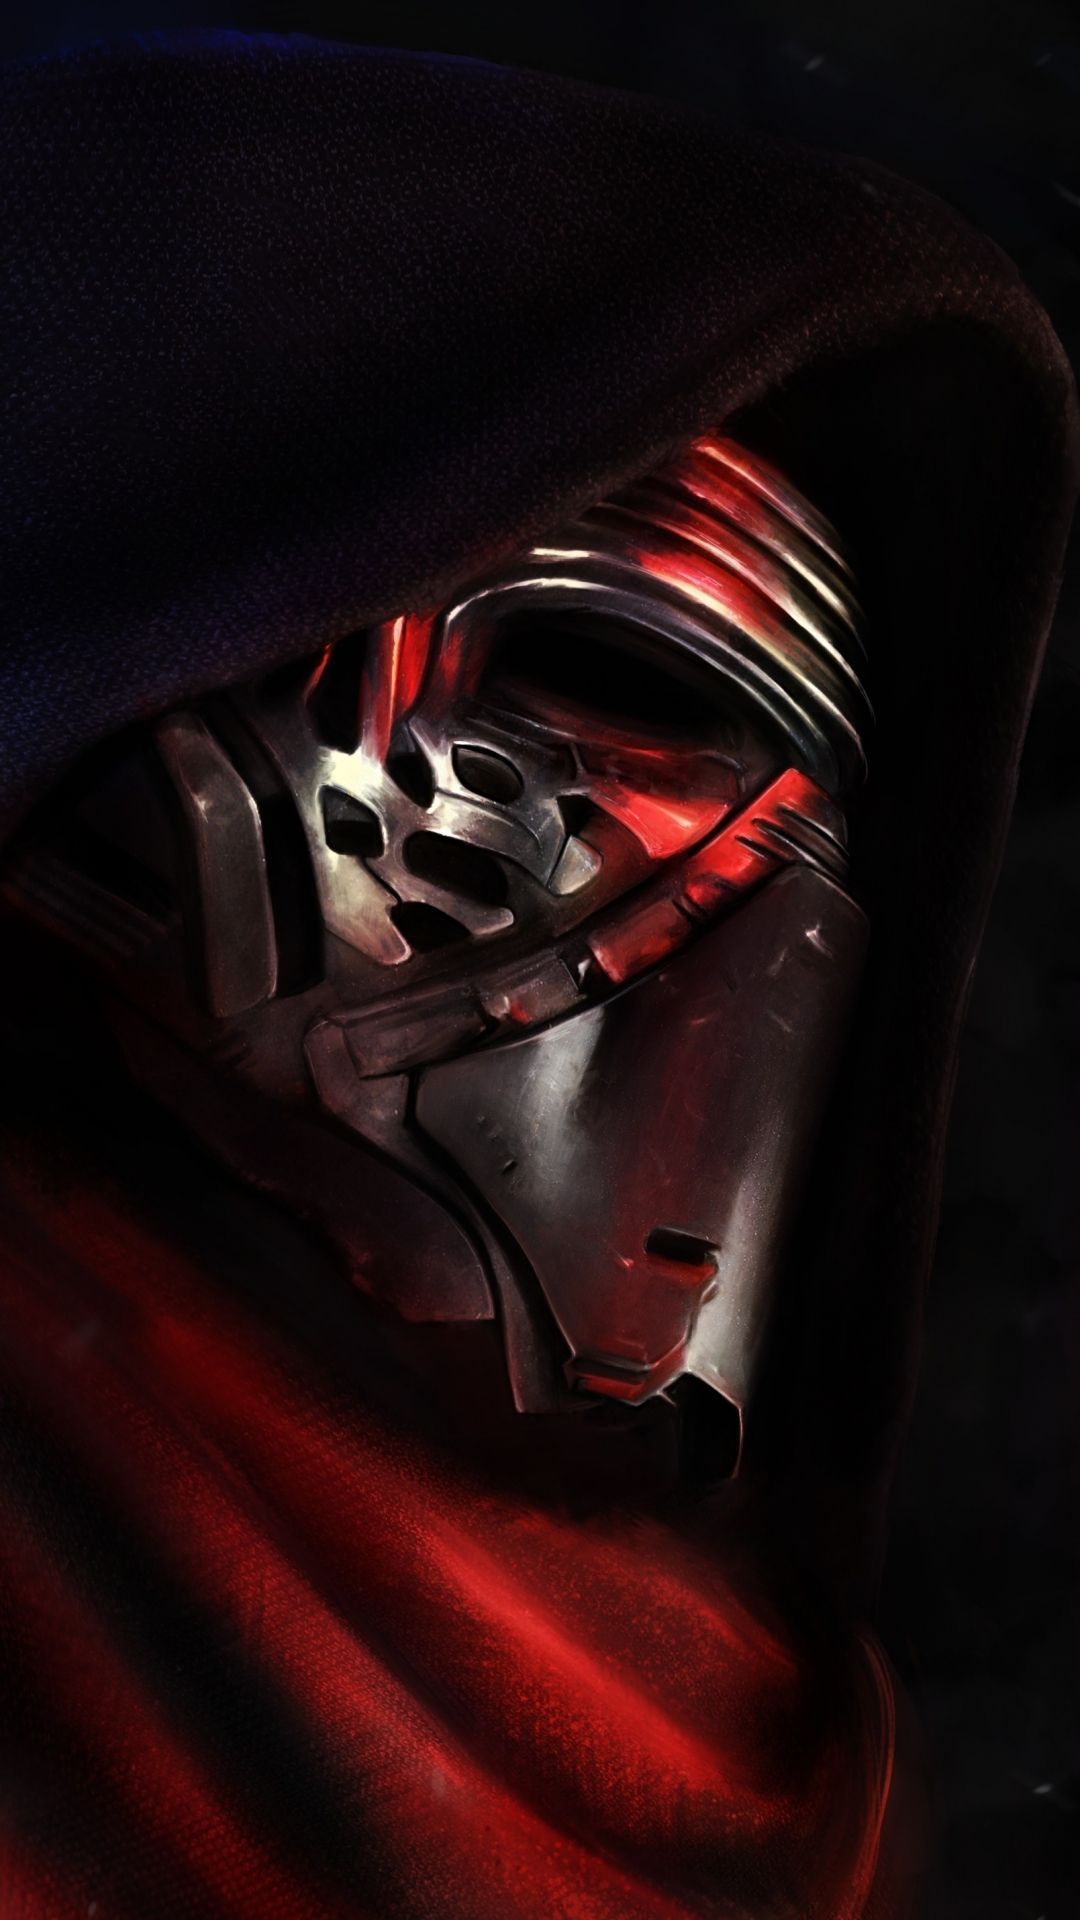 Star Wars Wallpaper Android Posted By Michelle Mercado